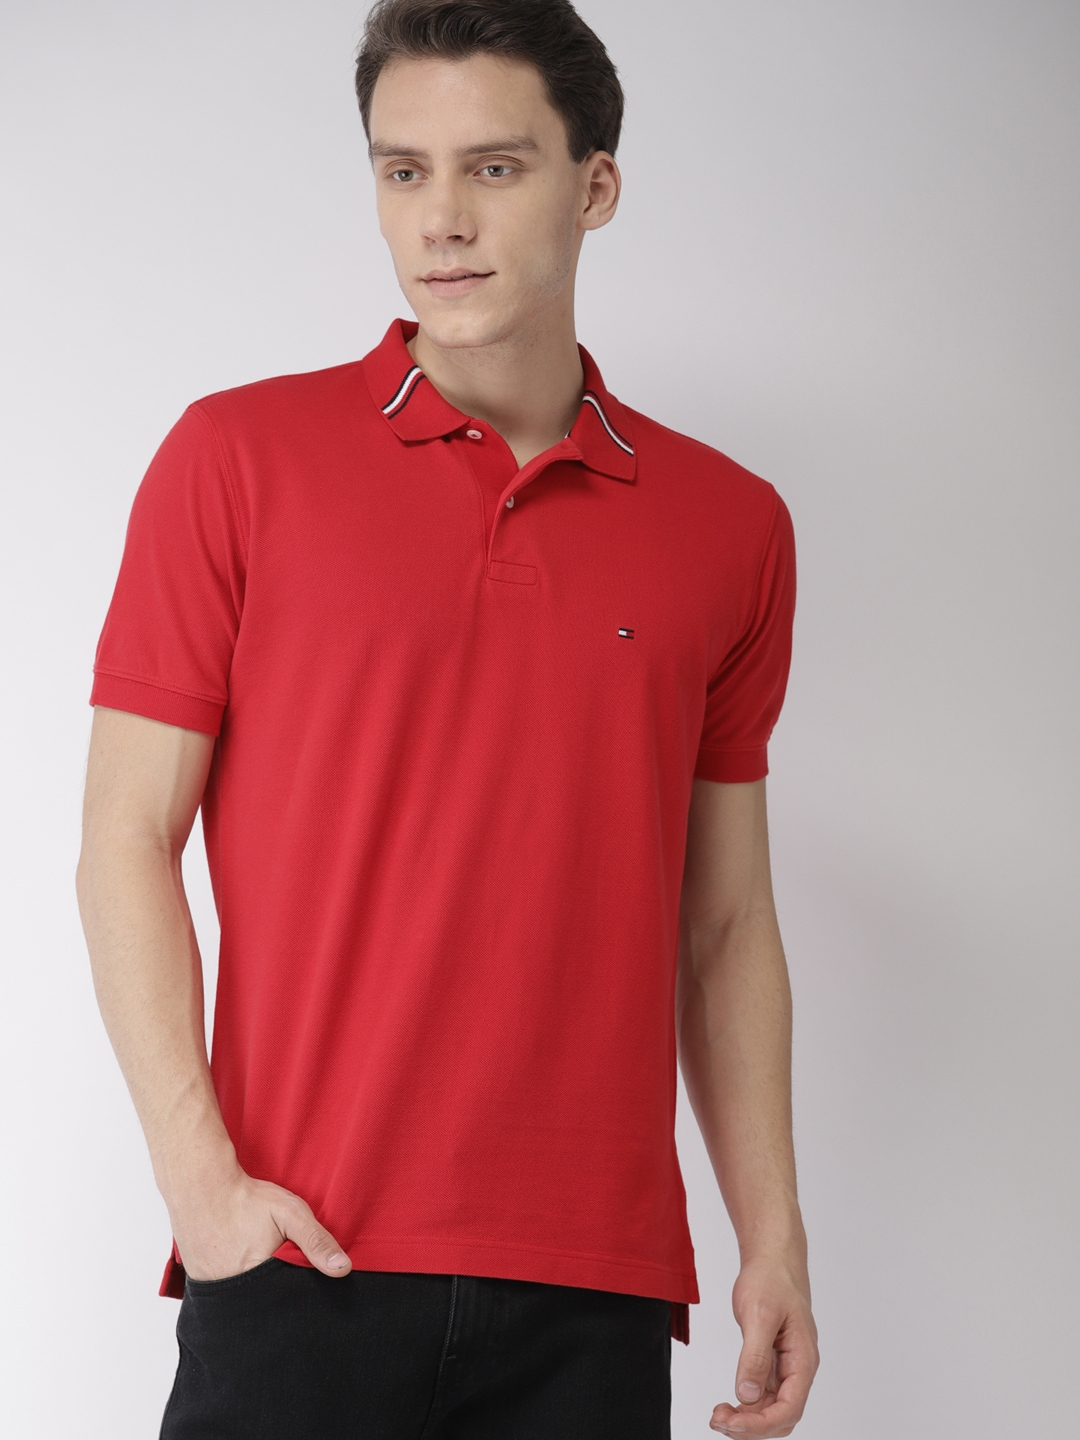 39c8fc220 Tommy Hilfiger Tshirt Stoles - Buy Tommy Hilfiger Tshirt Stoles online in  India